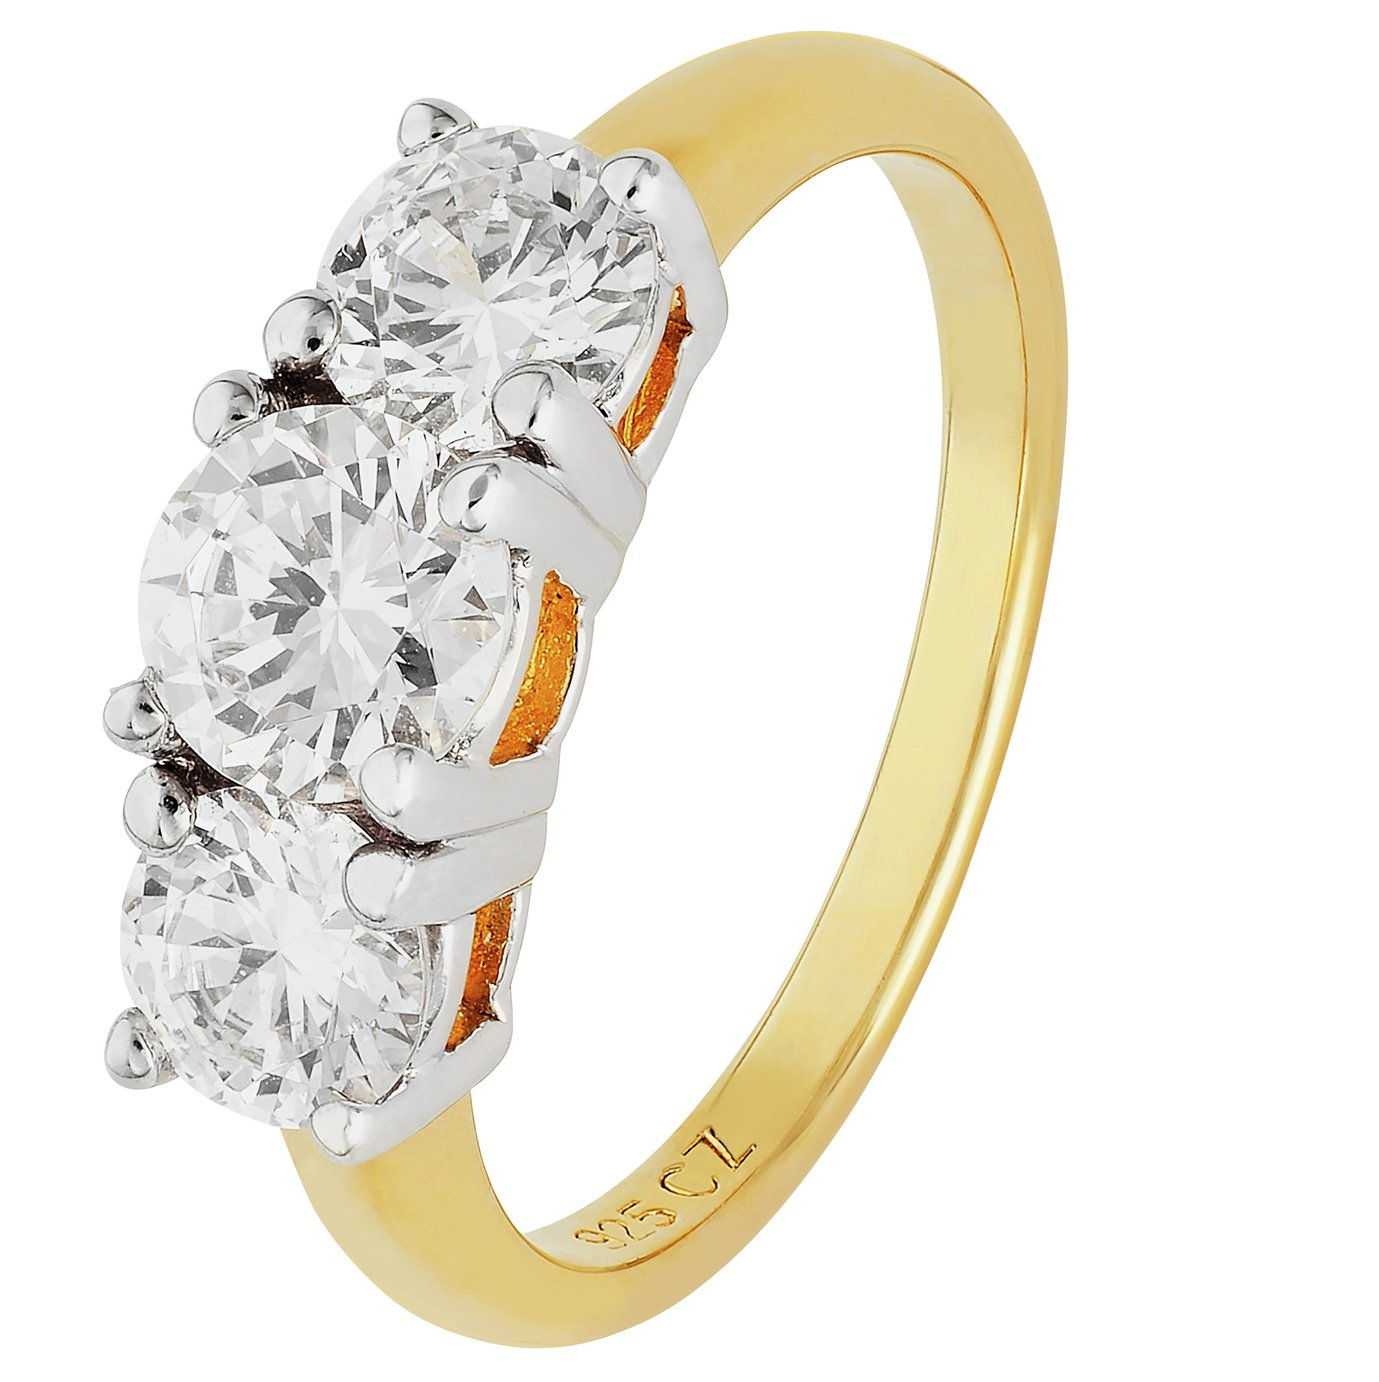 Buy Revere 18ct Gold Plated Silver 1 50ct Look 3 Stone Ring at